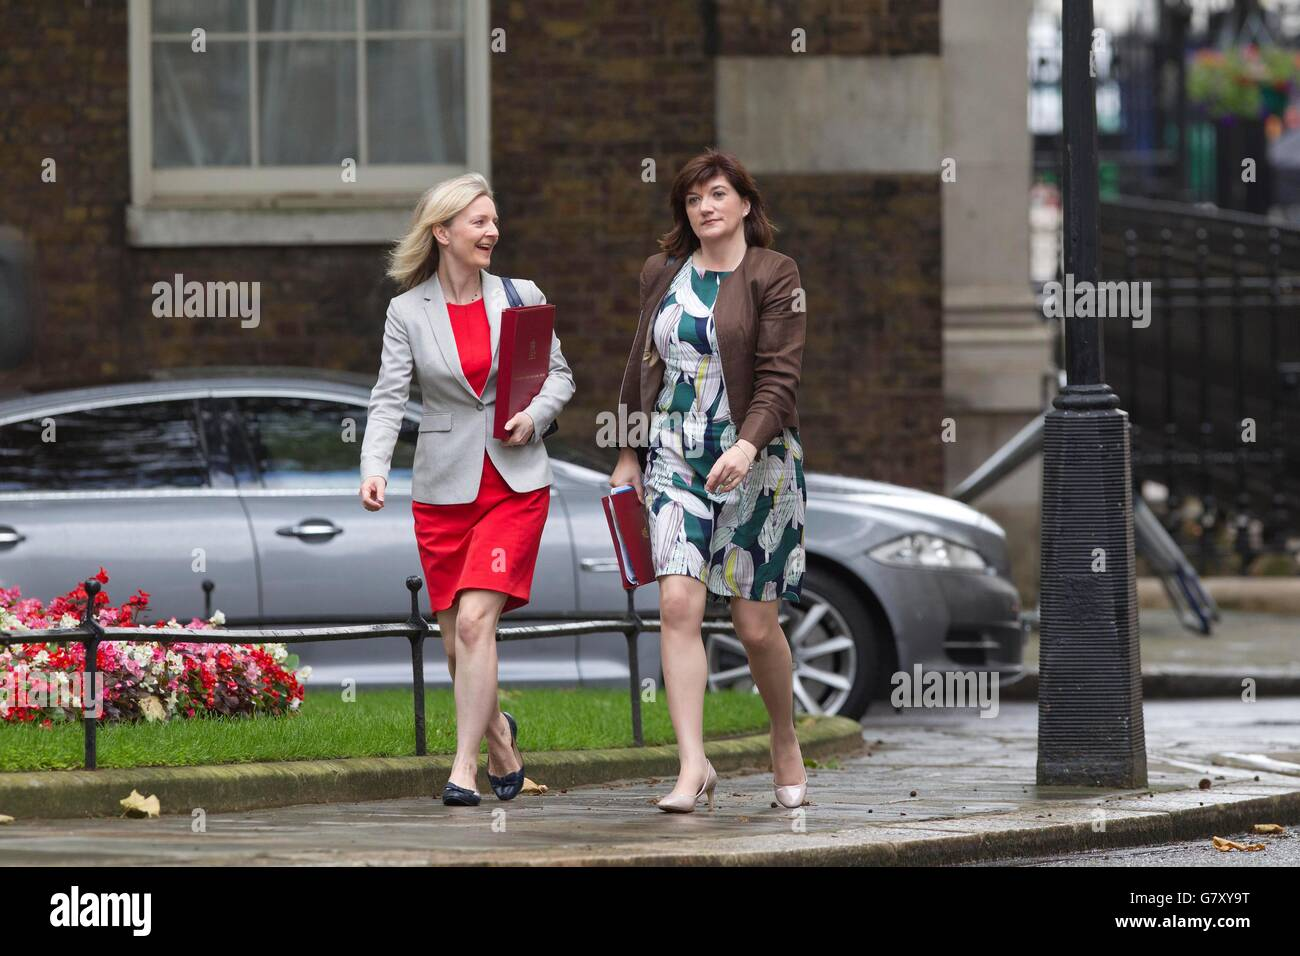 London, UK. 27th June, 2016. Liz Truss (left) Secretary of State for Environment, Food and Rural Affairs, with (right) Nicky Morgan Secretary of State for Education, arrive for the Conservative Party EU emergency Cabinet Meeting in Downing Street, London, UK Credit:  Jeff Gilbert/Alamy Live News Stock Photo